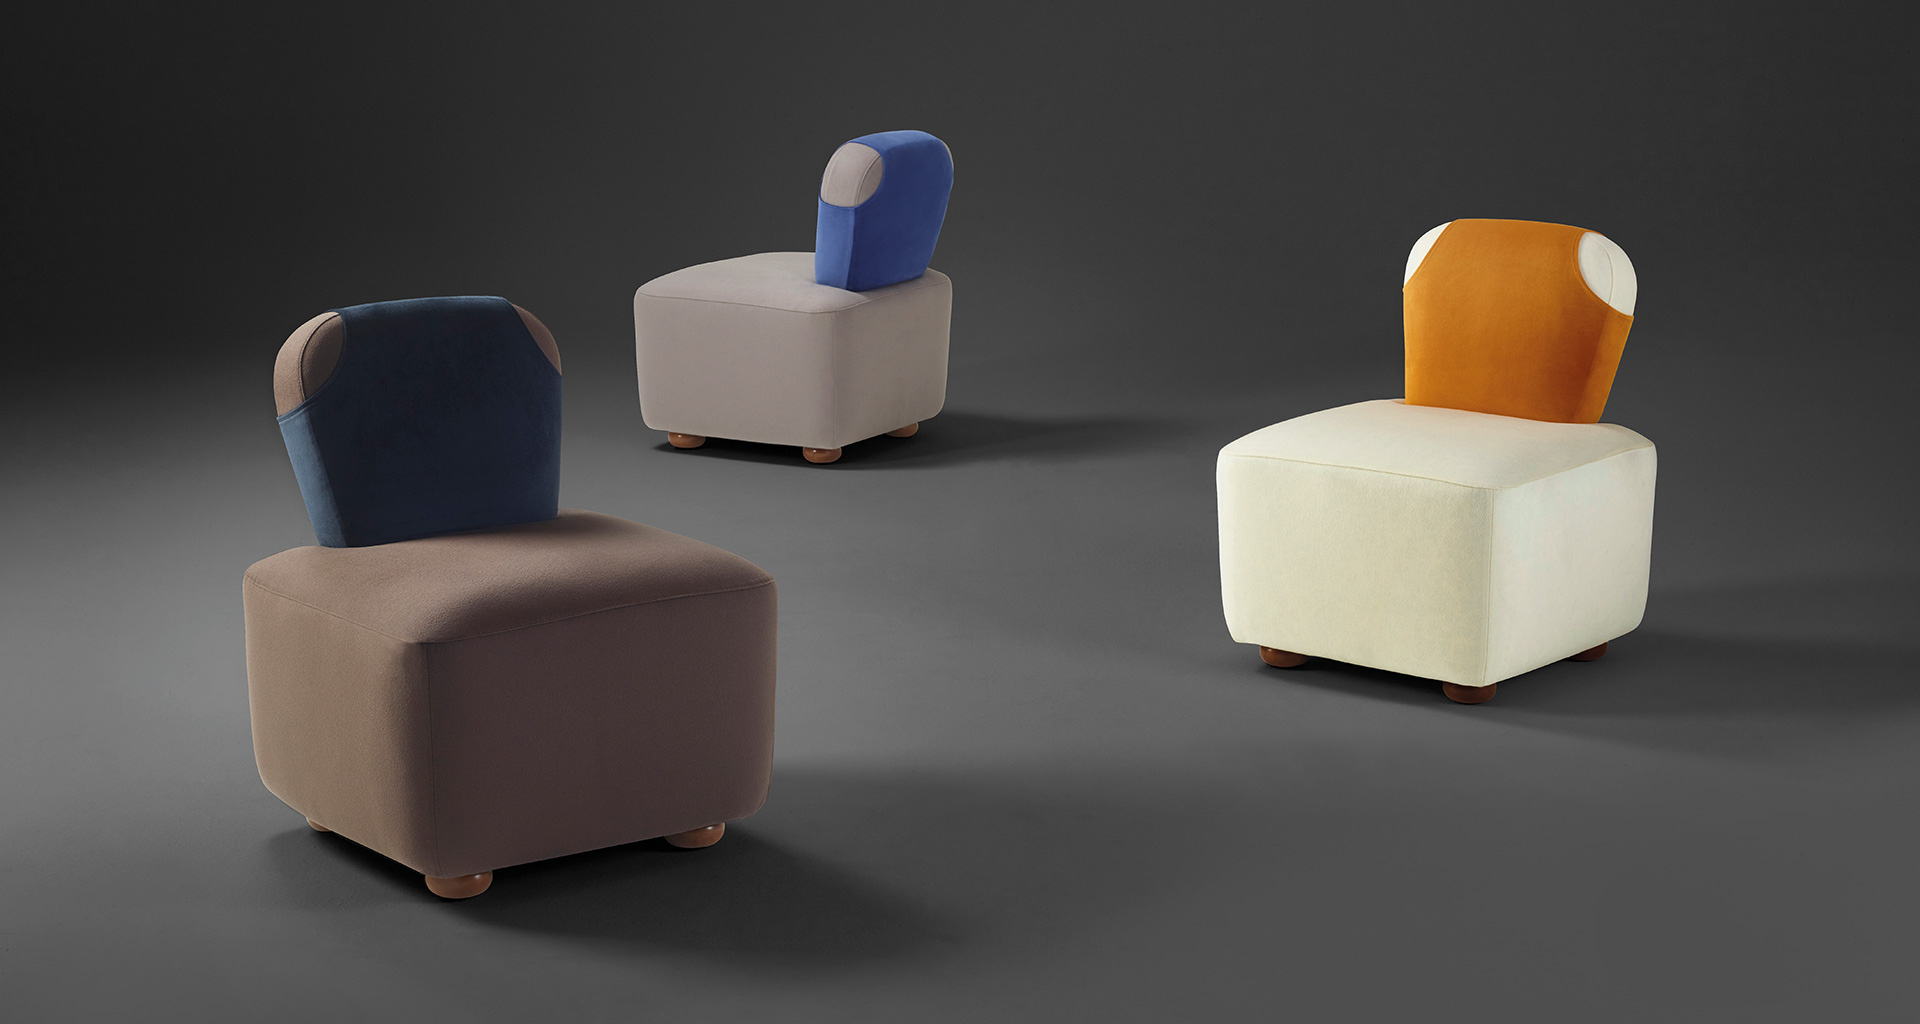 Promemoria | Bomb: Lounge Armachair Designed by Massimo Morozzi